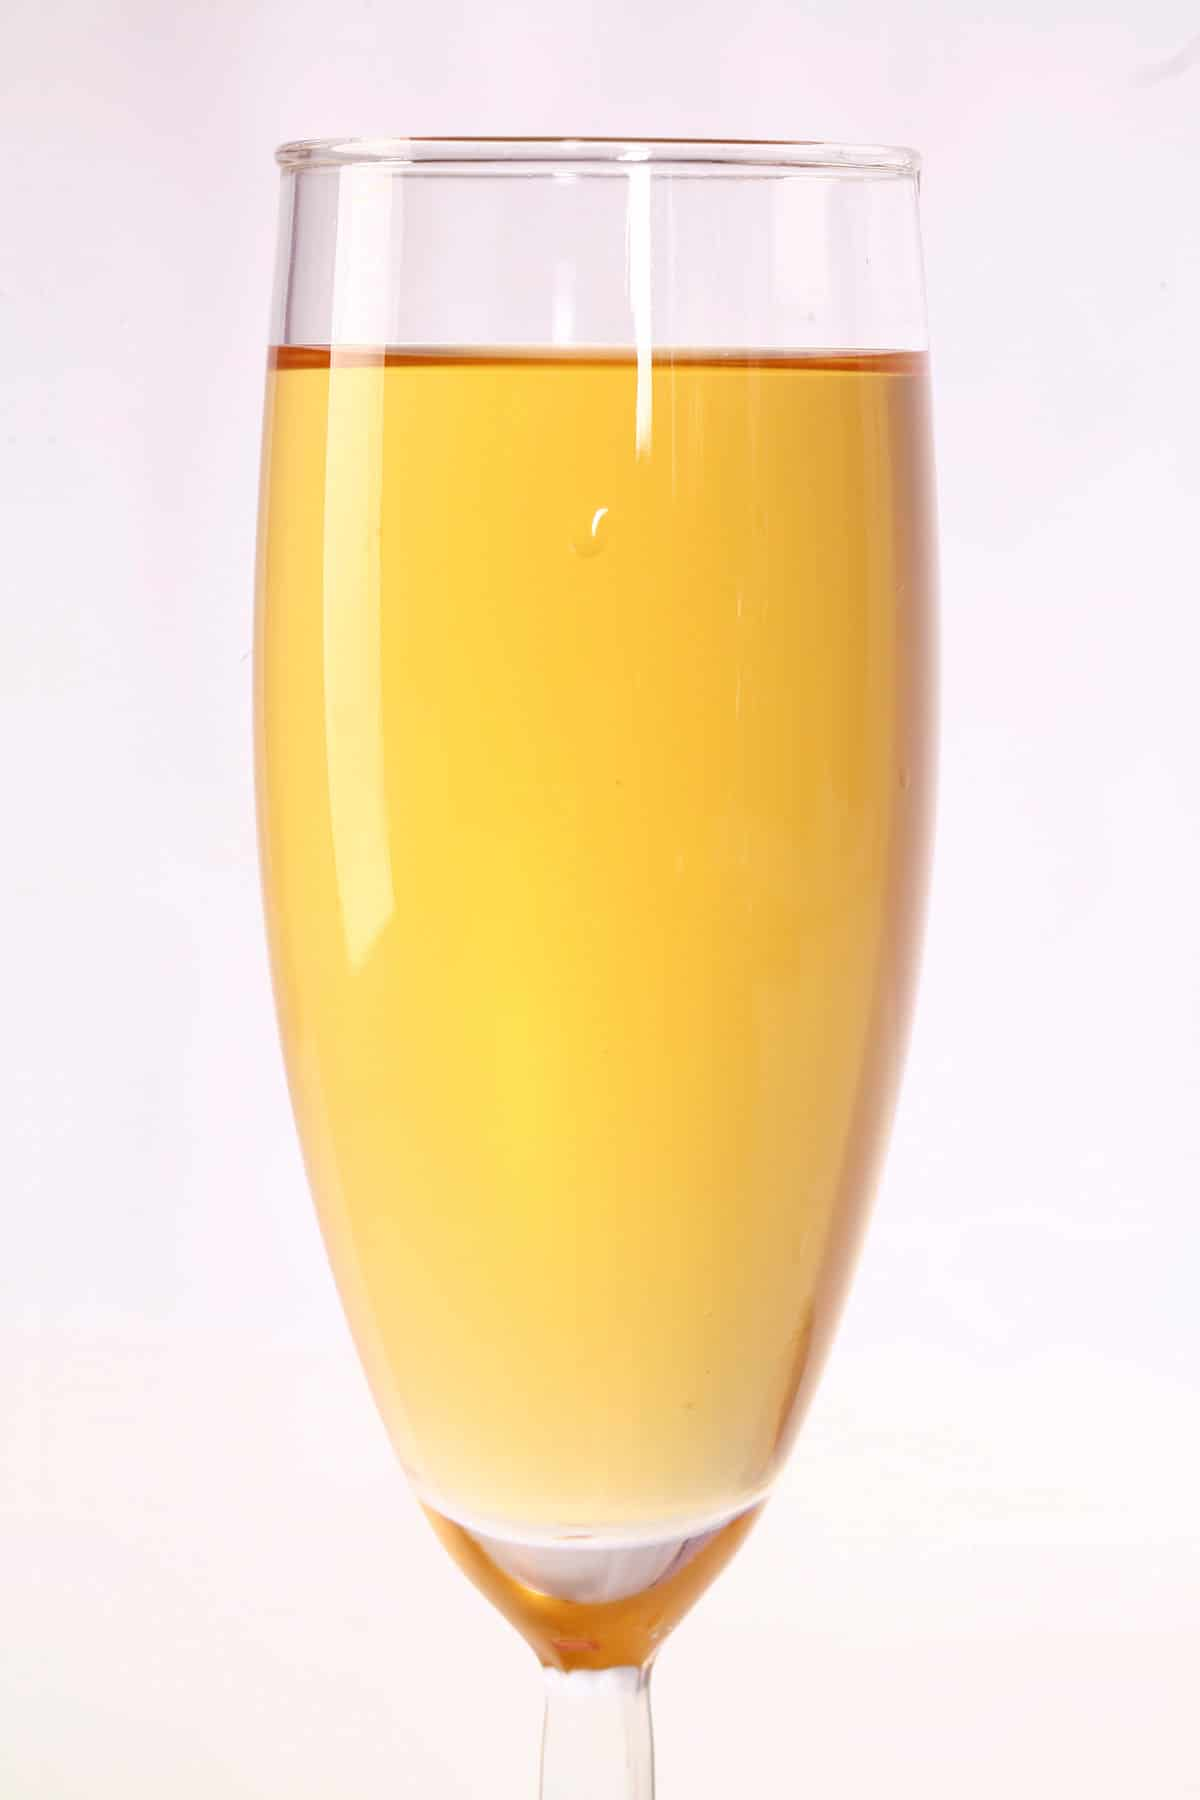 A flute of golden yellow passionfruit wine.